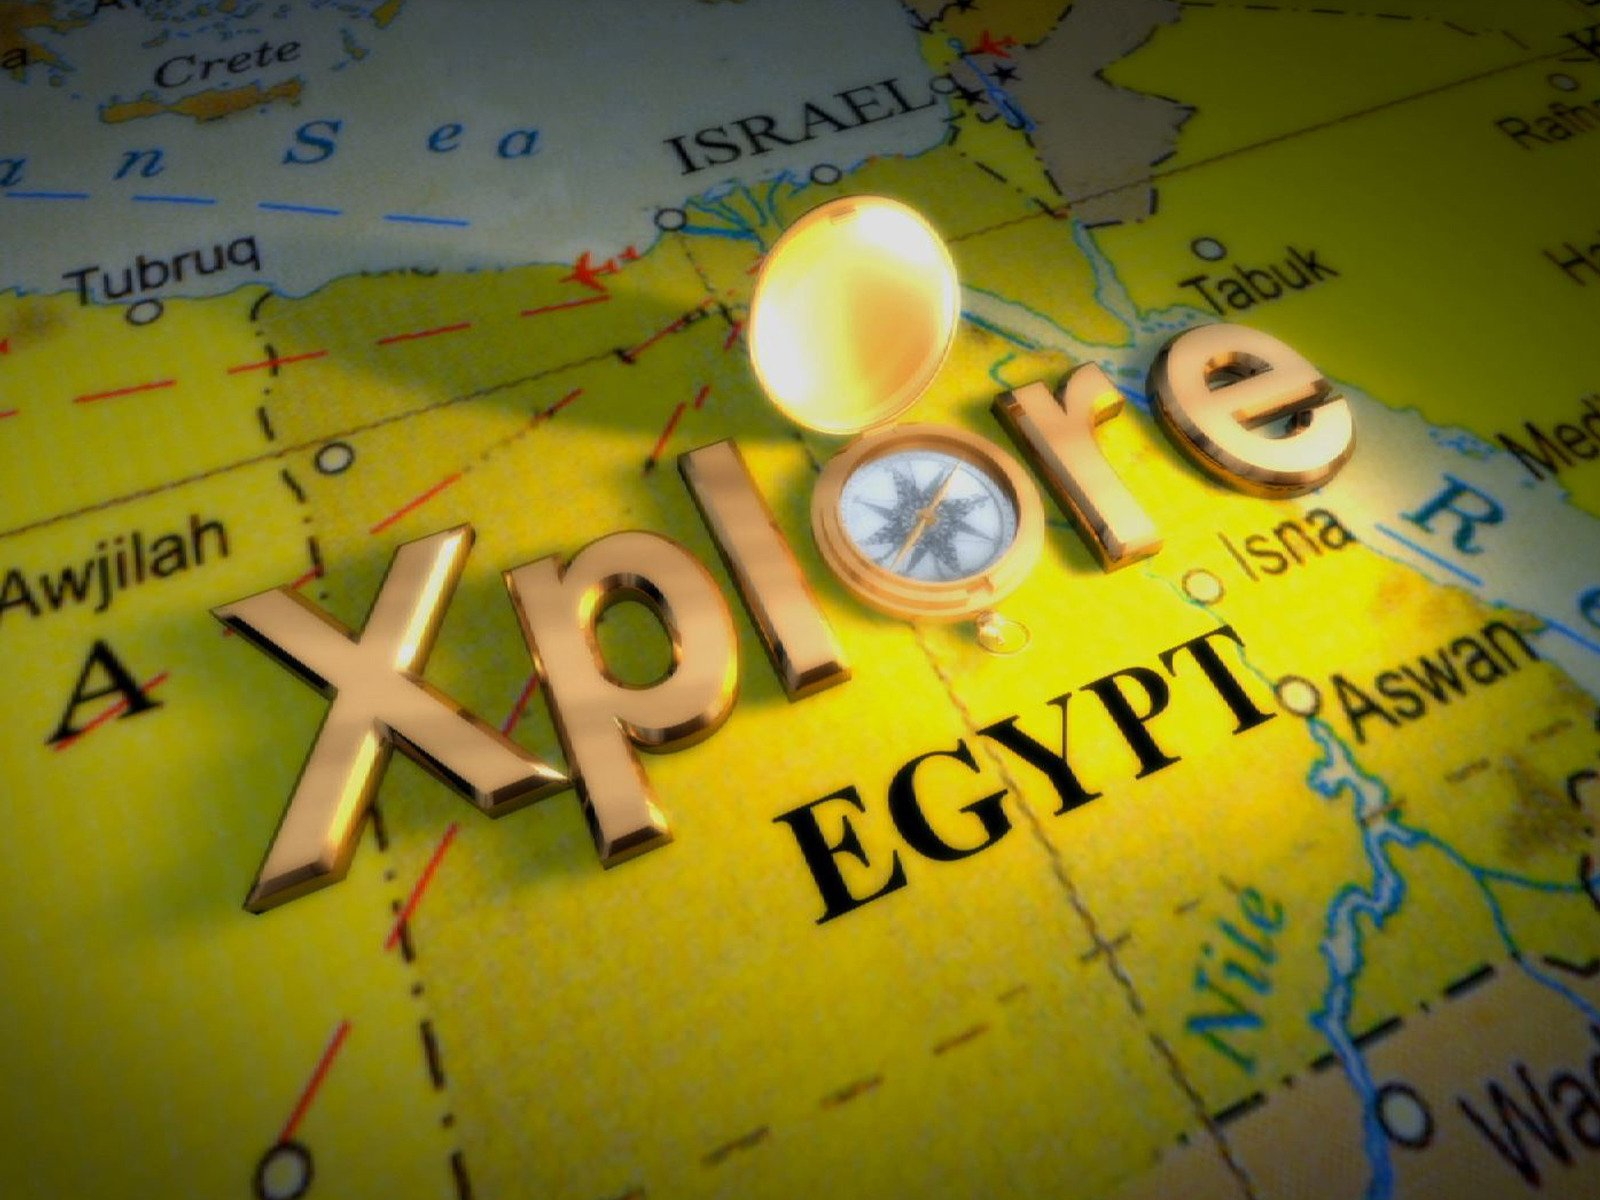 Xplore Egypt - Season 1